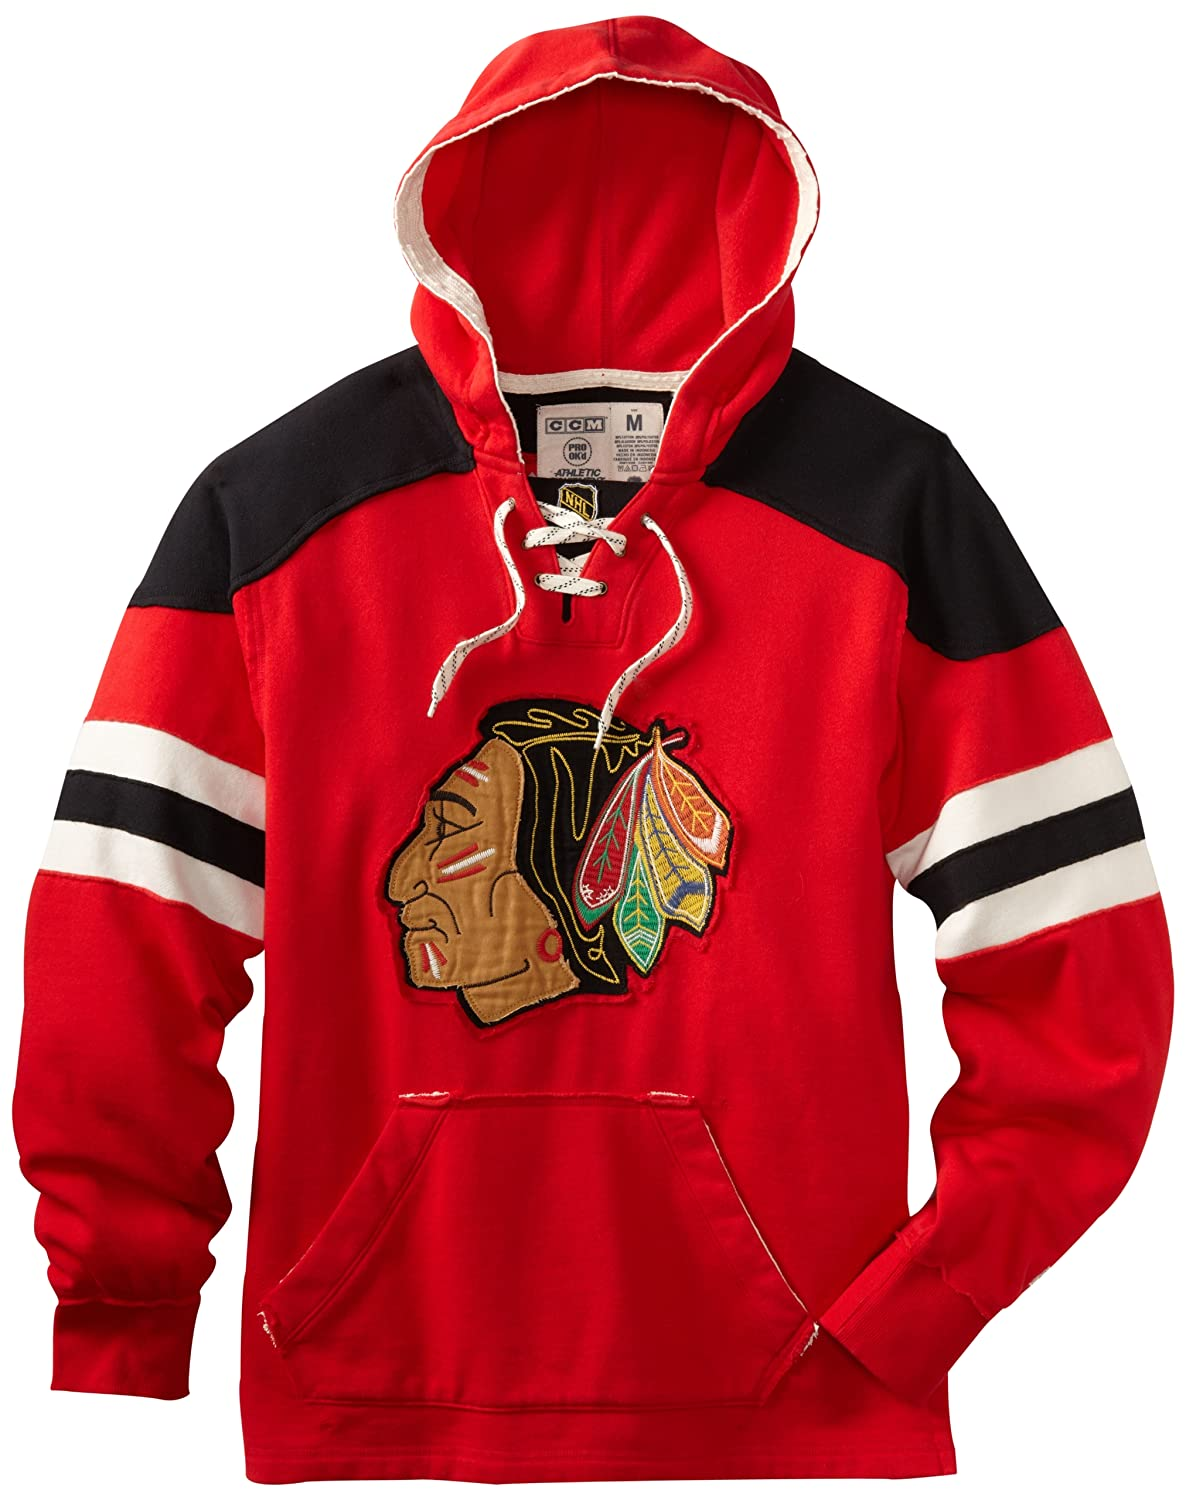 reputable site 8b143 01753 NHL Chicago Blackhawks CCM Pullover Hoodie